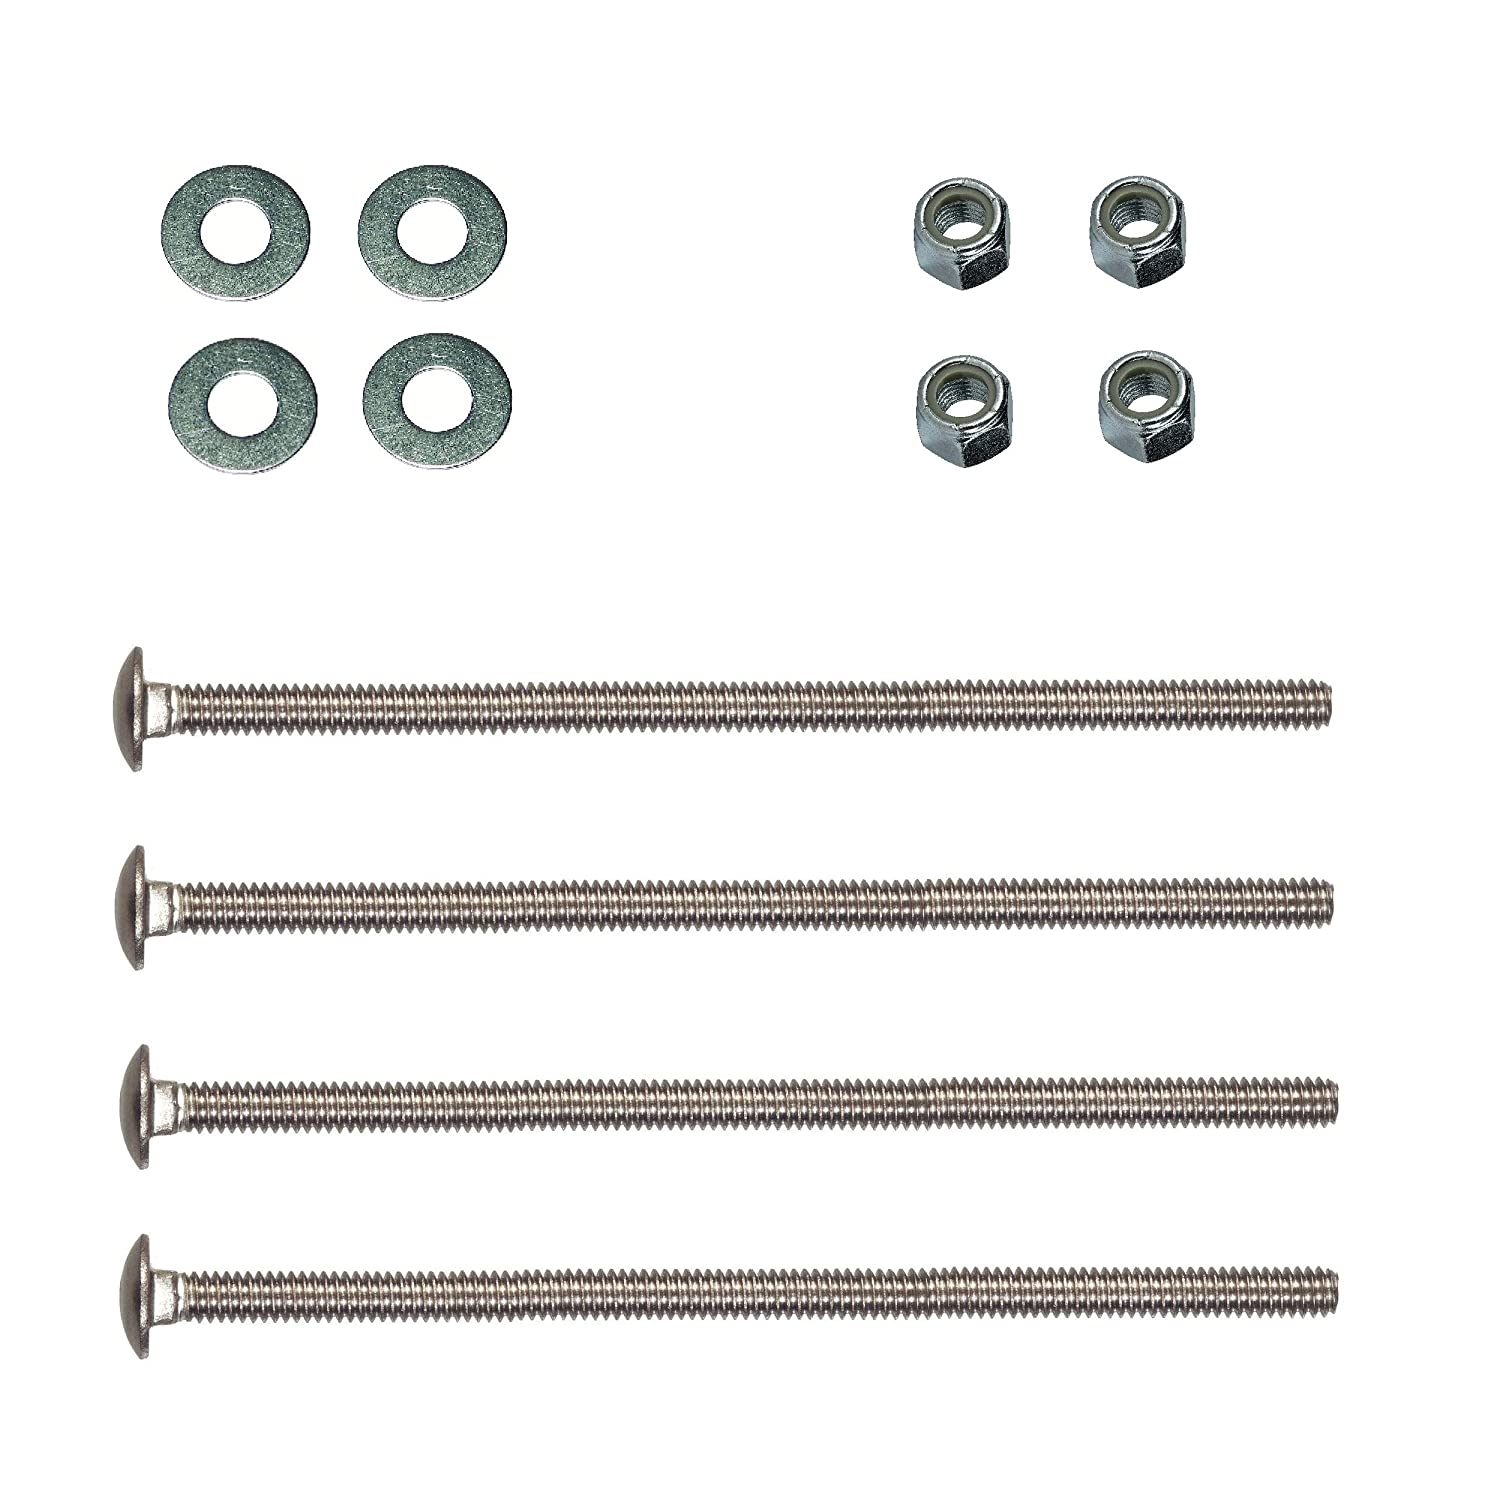 BMB Universal Headboard Nuts and Bolts 4 or 6 Carriage Bolts with Washers and Lock Nuts 2-1//2 1//4-20 X 2-1//2 3-1//2